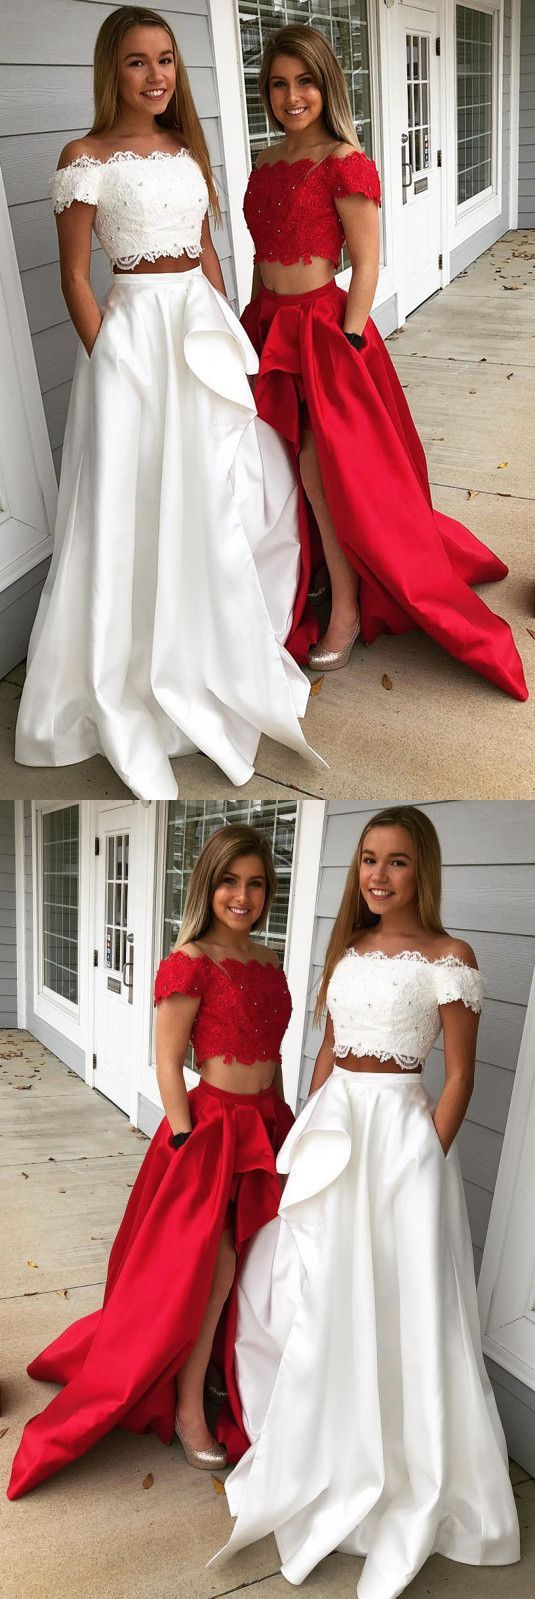 Elegant Two Pieces Off The Shoulder Prom Dresses,Long Prom Dresses,Green Prom Dresses, Evening Dress Prom Gowns, Formal Women Dress,Prom Dress